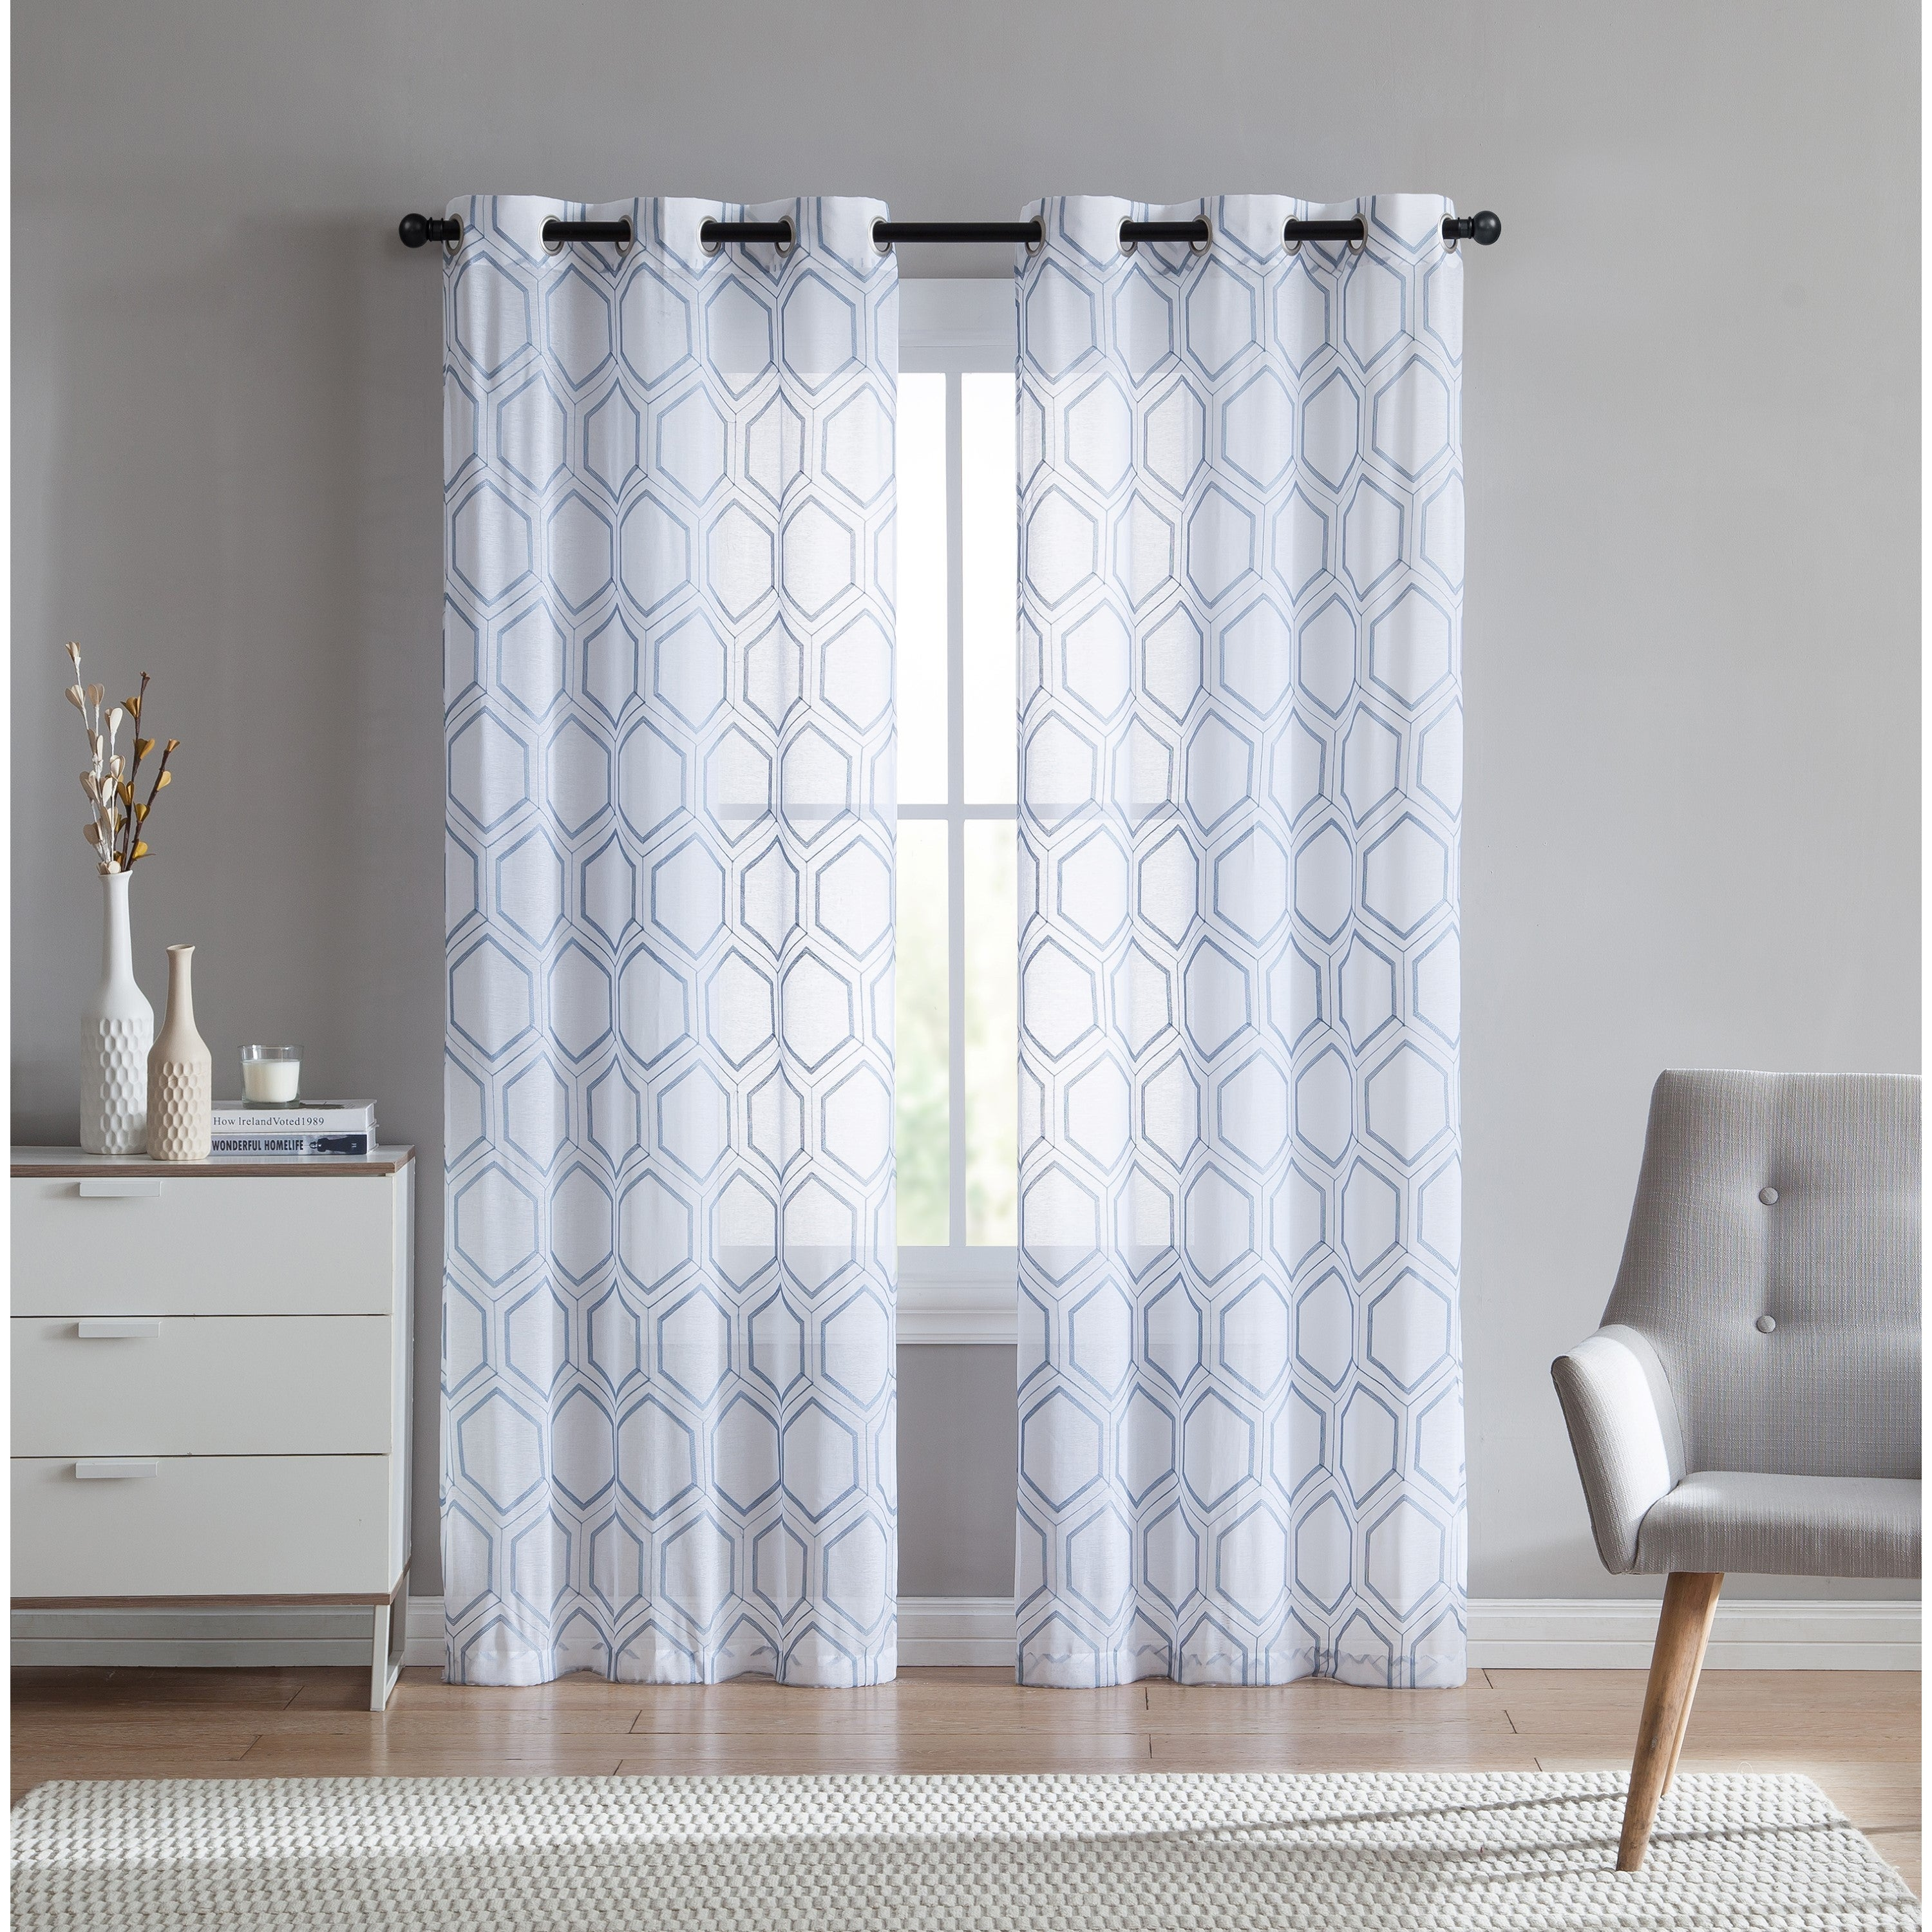 Shop VCNY Home Empire Sheer Curtain Panel Pair